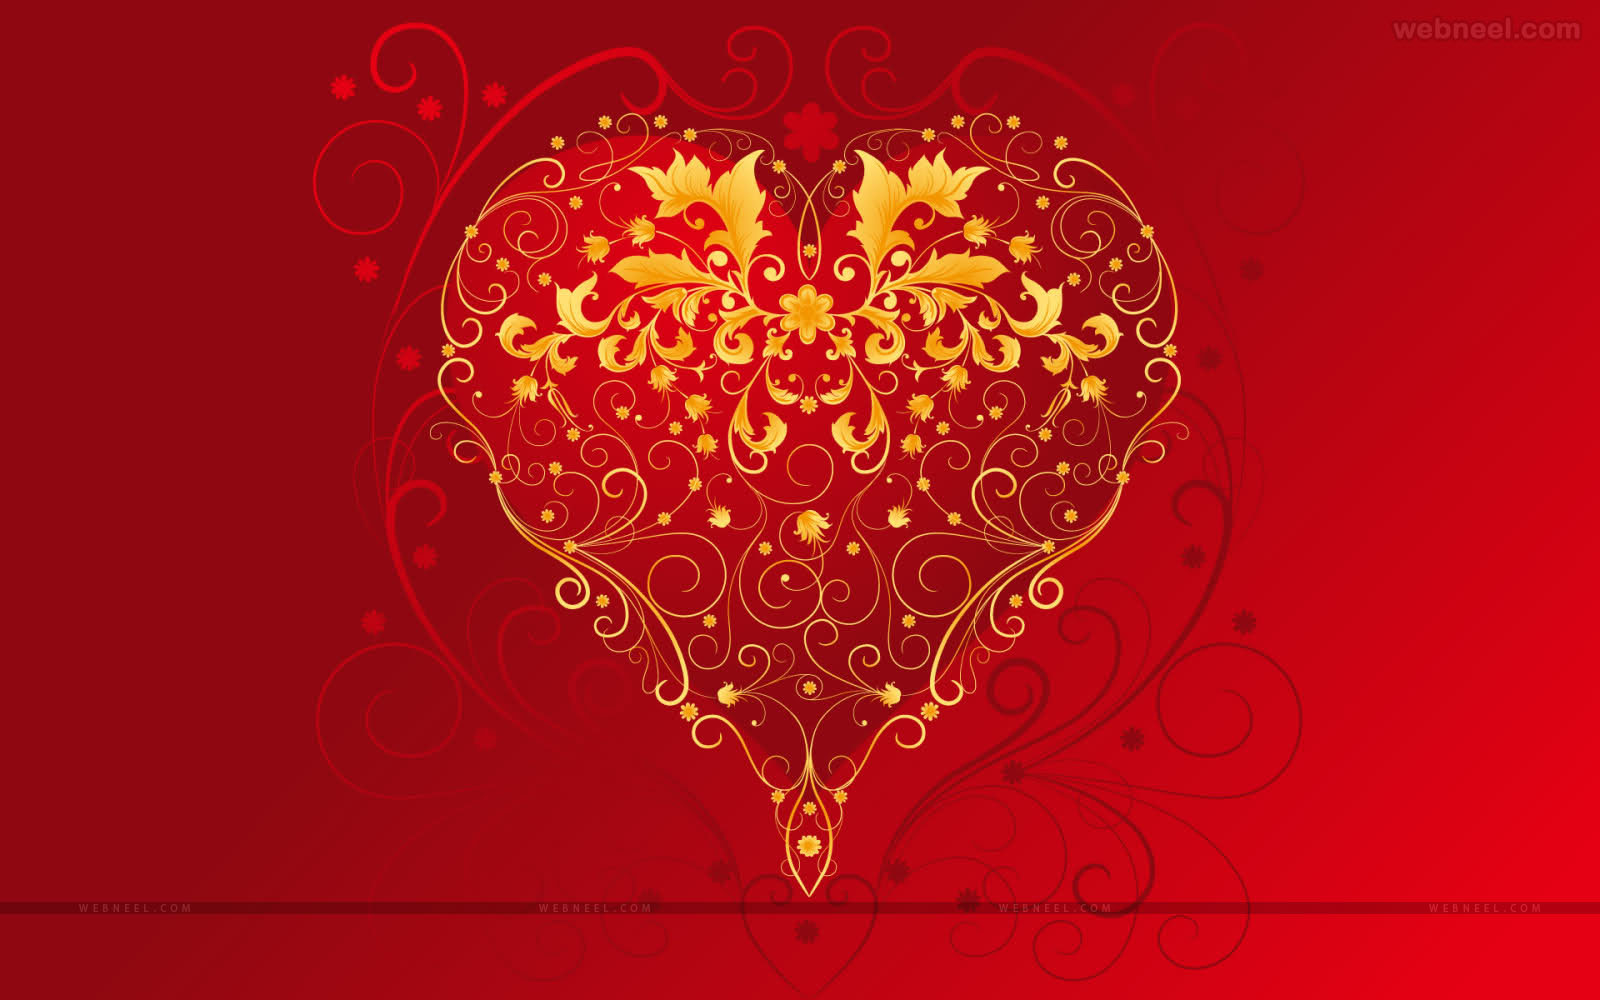 beautiful valentines day wallpapers for your desktop, Beautiful flower